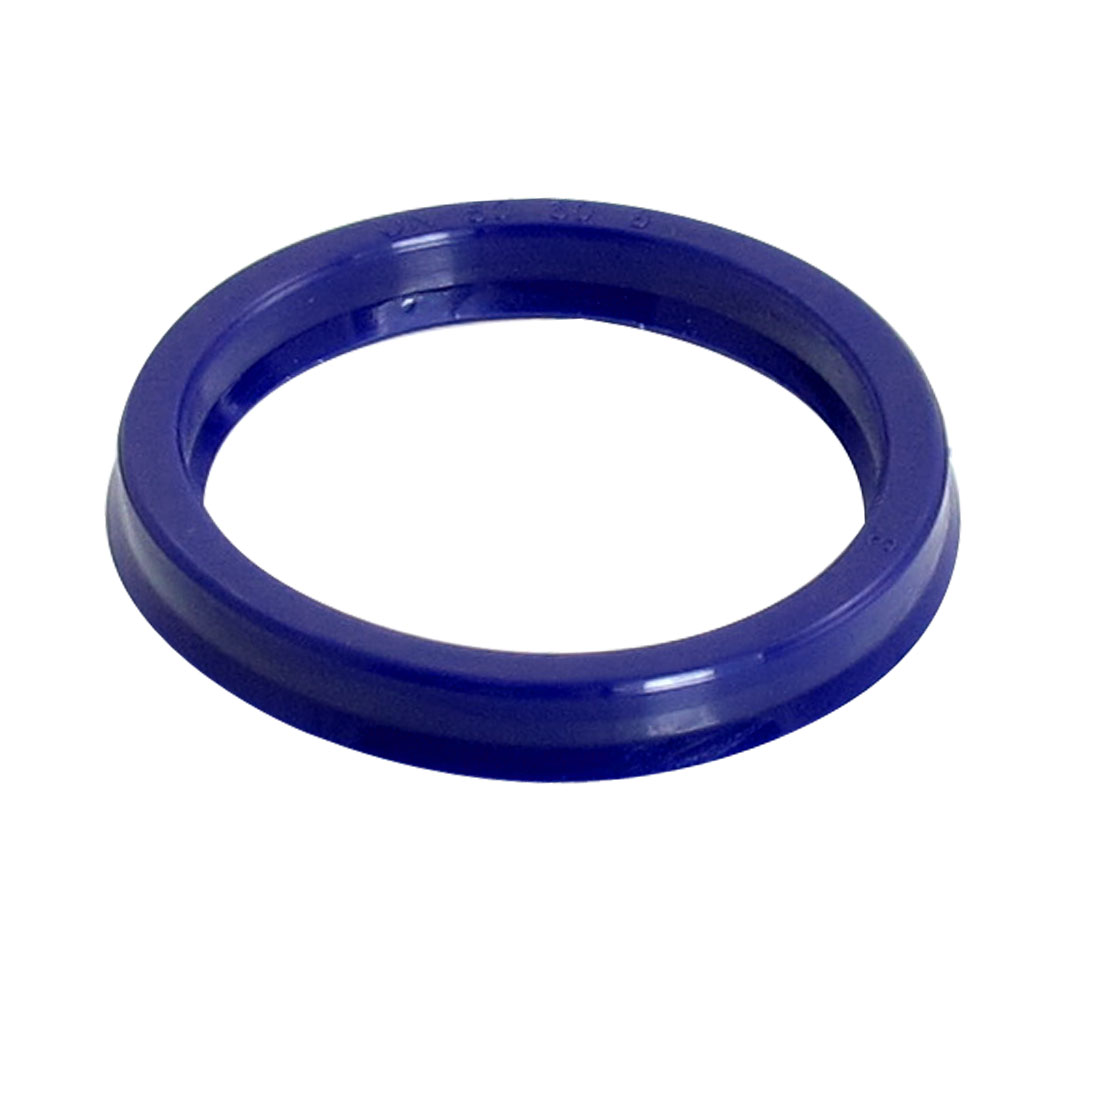 Blue PU 50mm x 60mm x 8mm Double Lip Sealing Cushion Dust Seal Ring